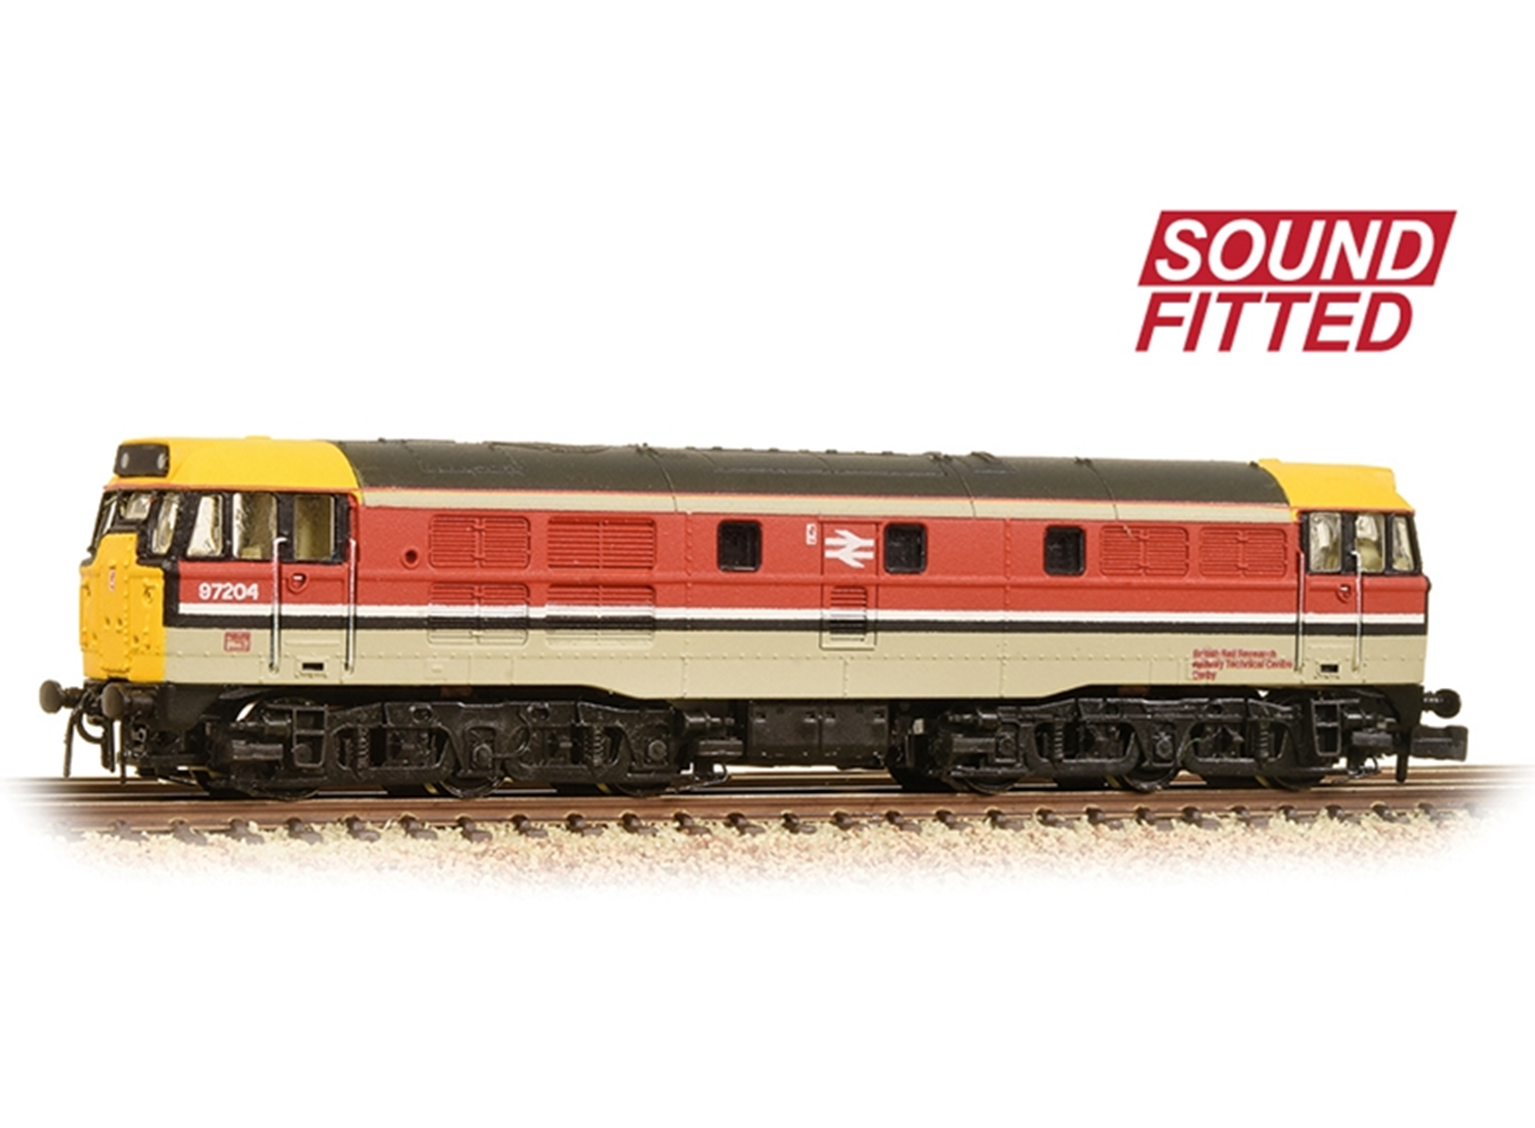 Class 31/1 97204 BR RTC (Revised) Diesel Locomotive DCC Sound